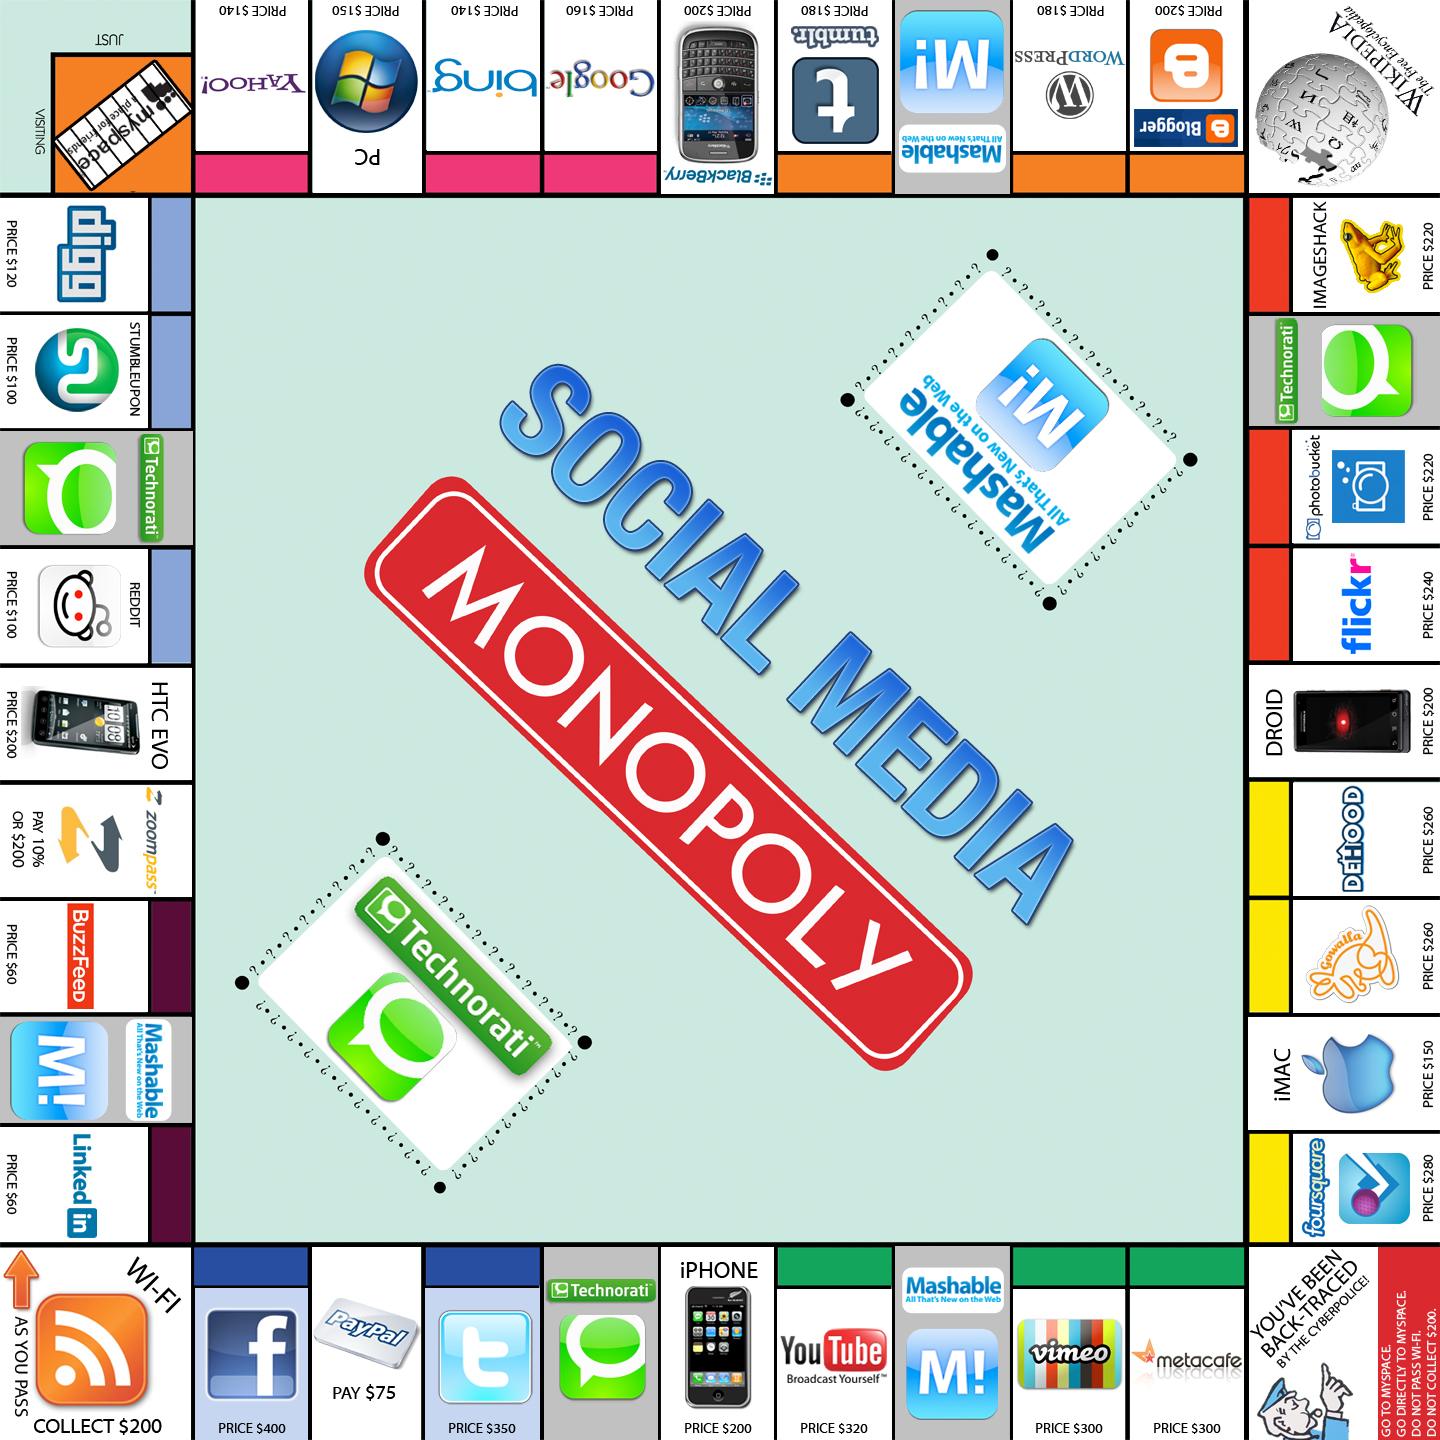 Social Media Monopoly (by Mashable & Technorati)